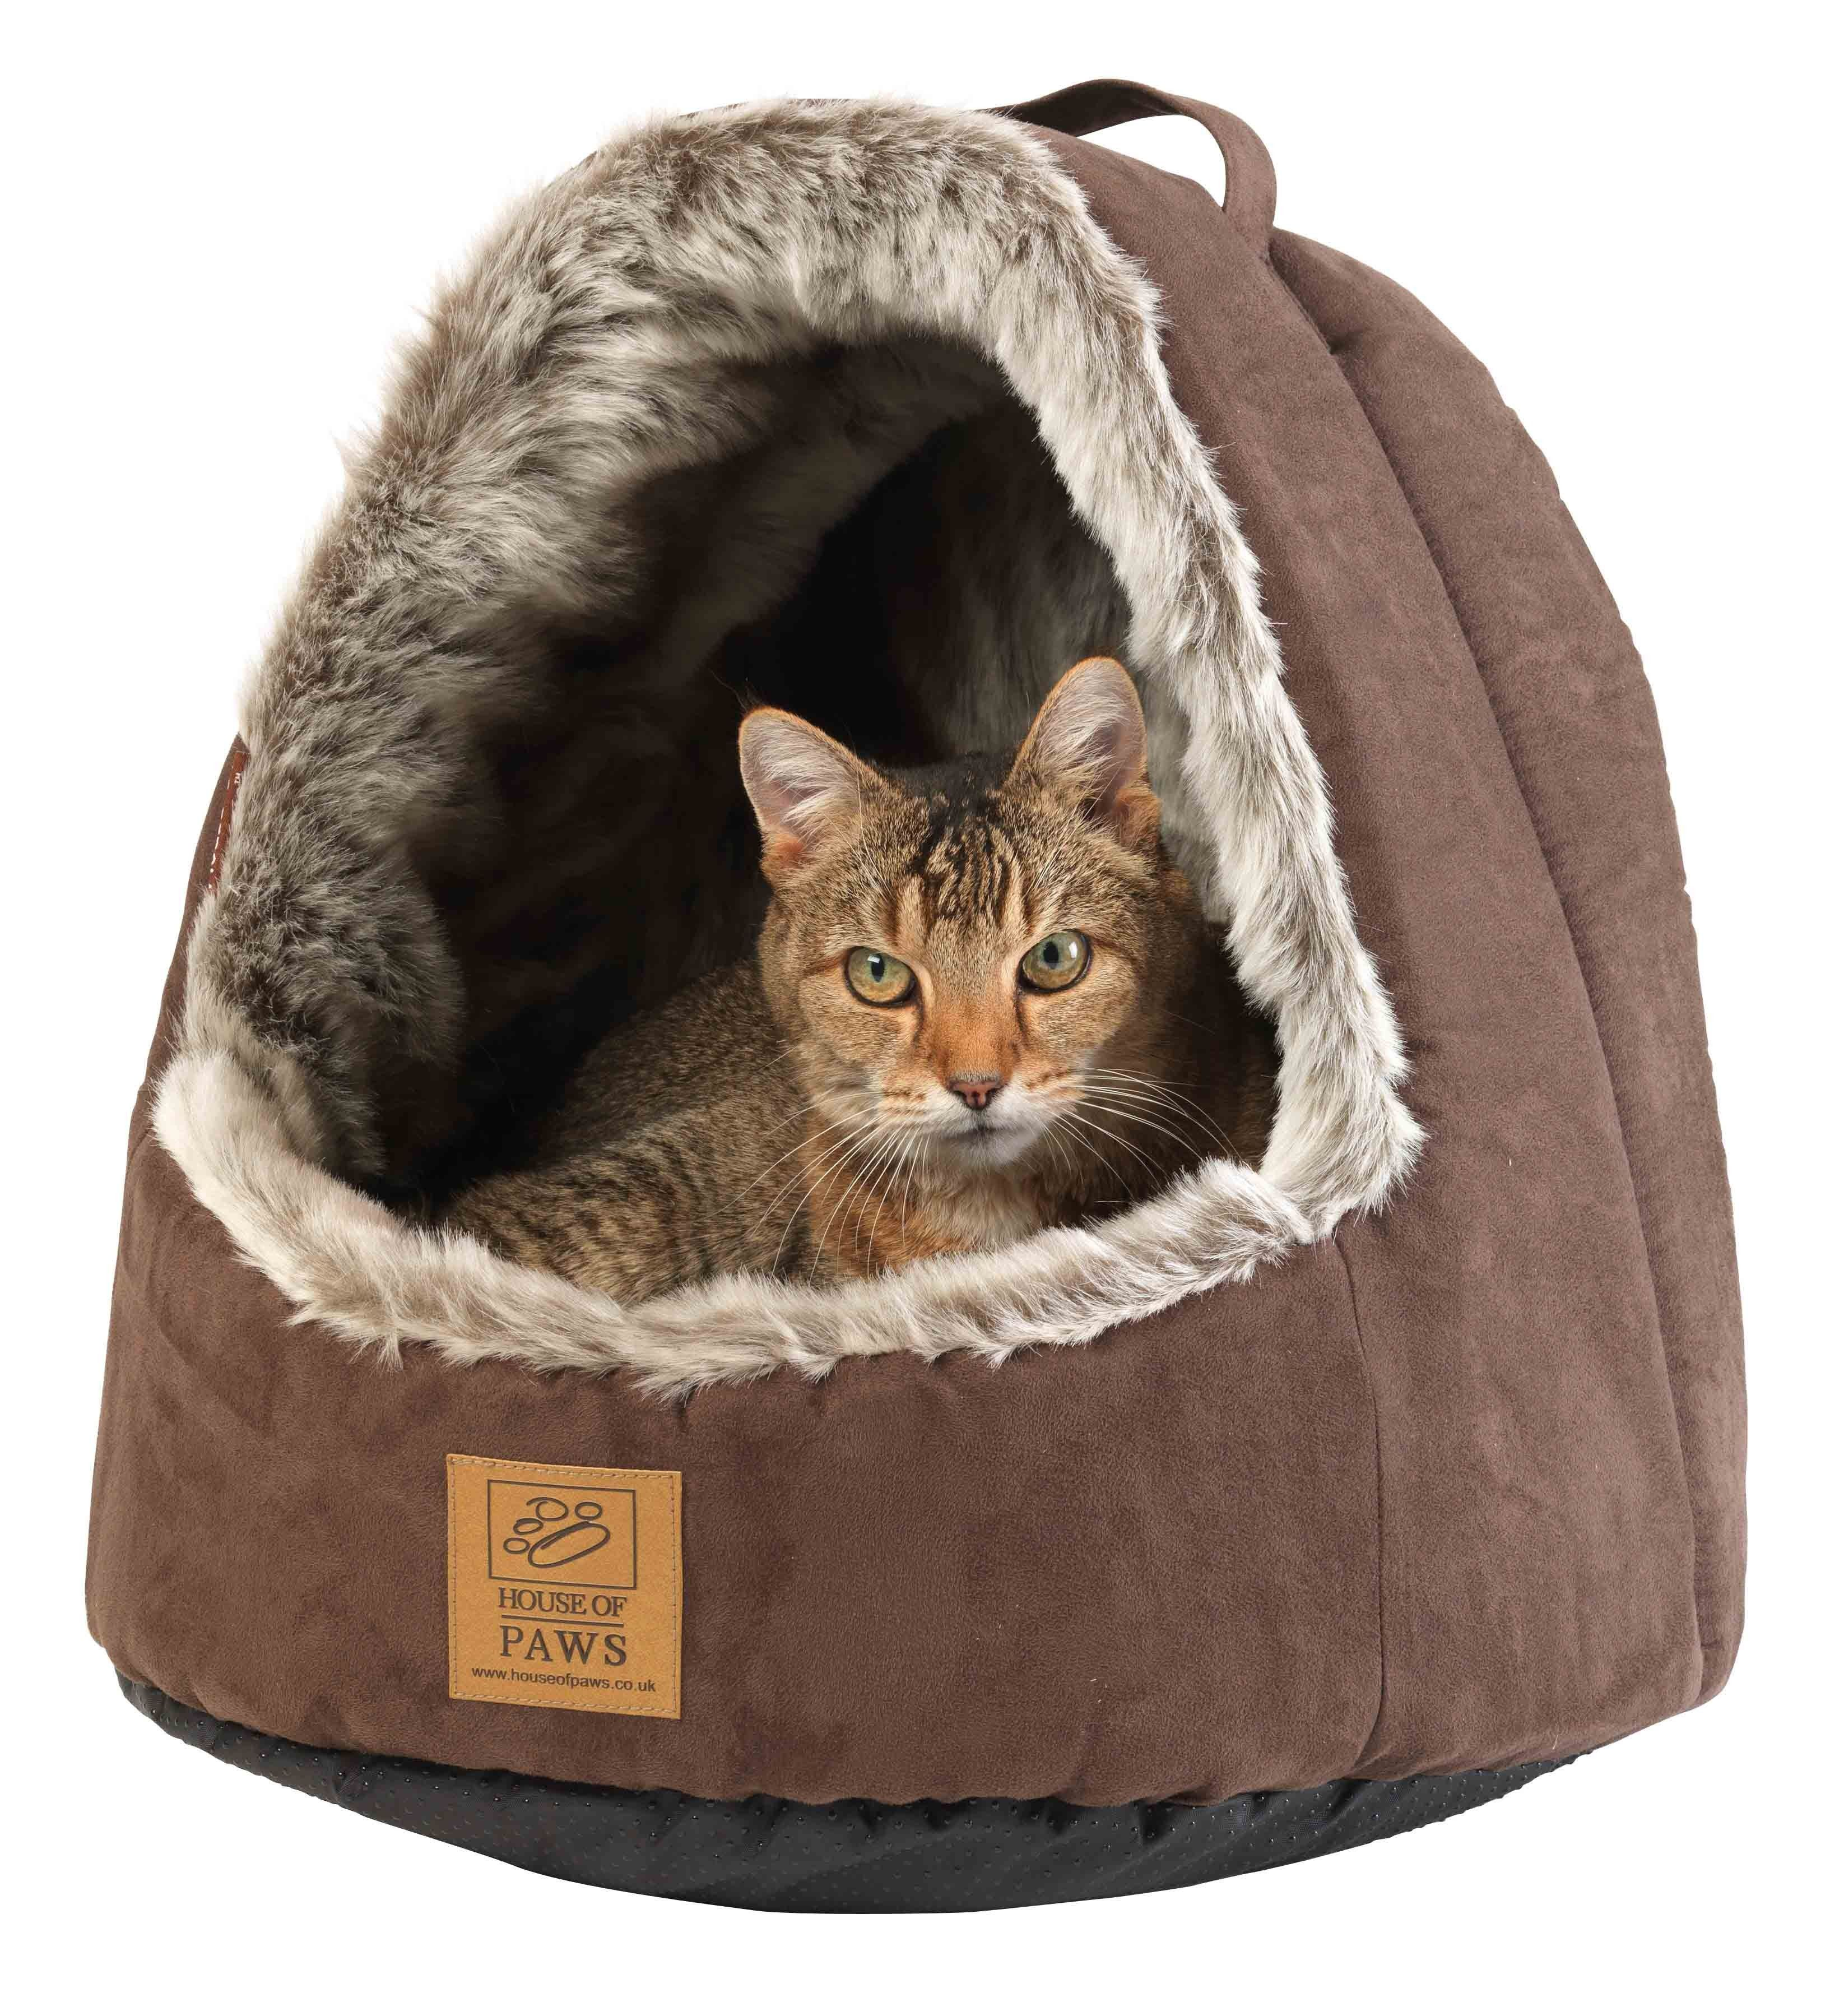 Cat Beds And Furniture Hooded Cat Bed Gato Cama Pinterest Cat Beds Beds